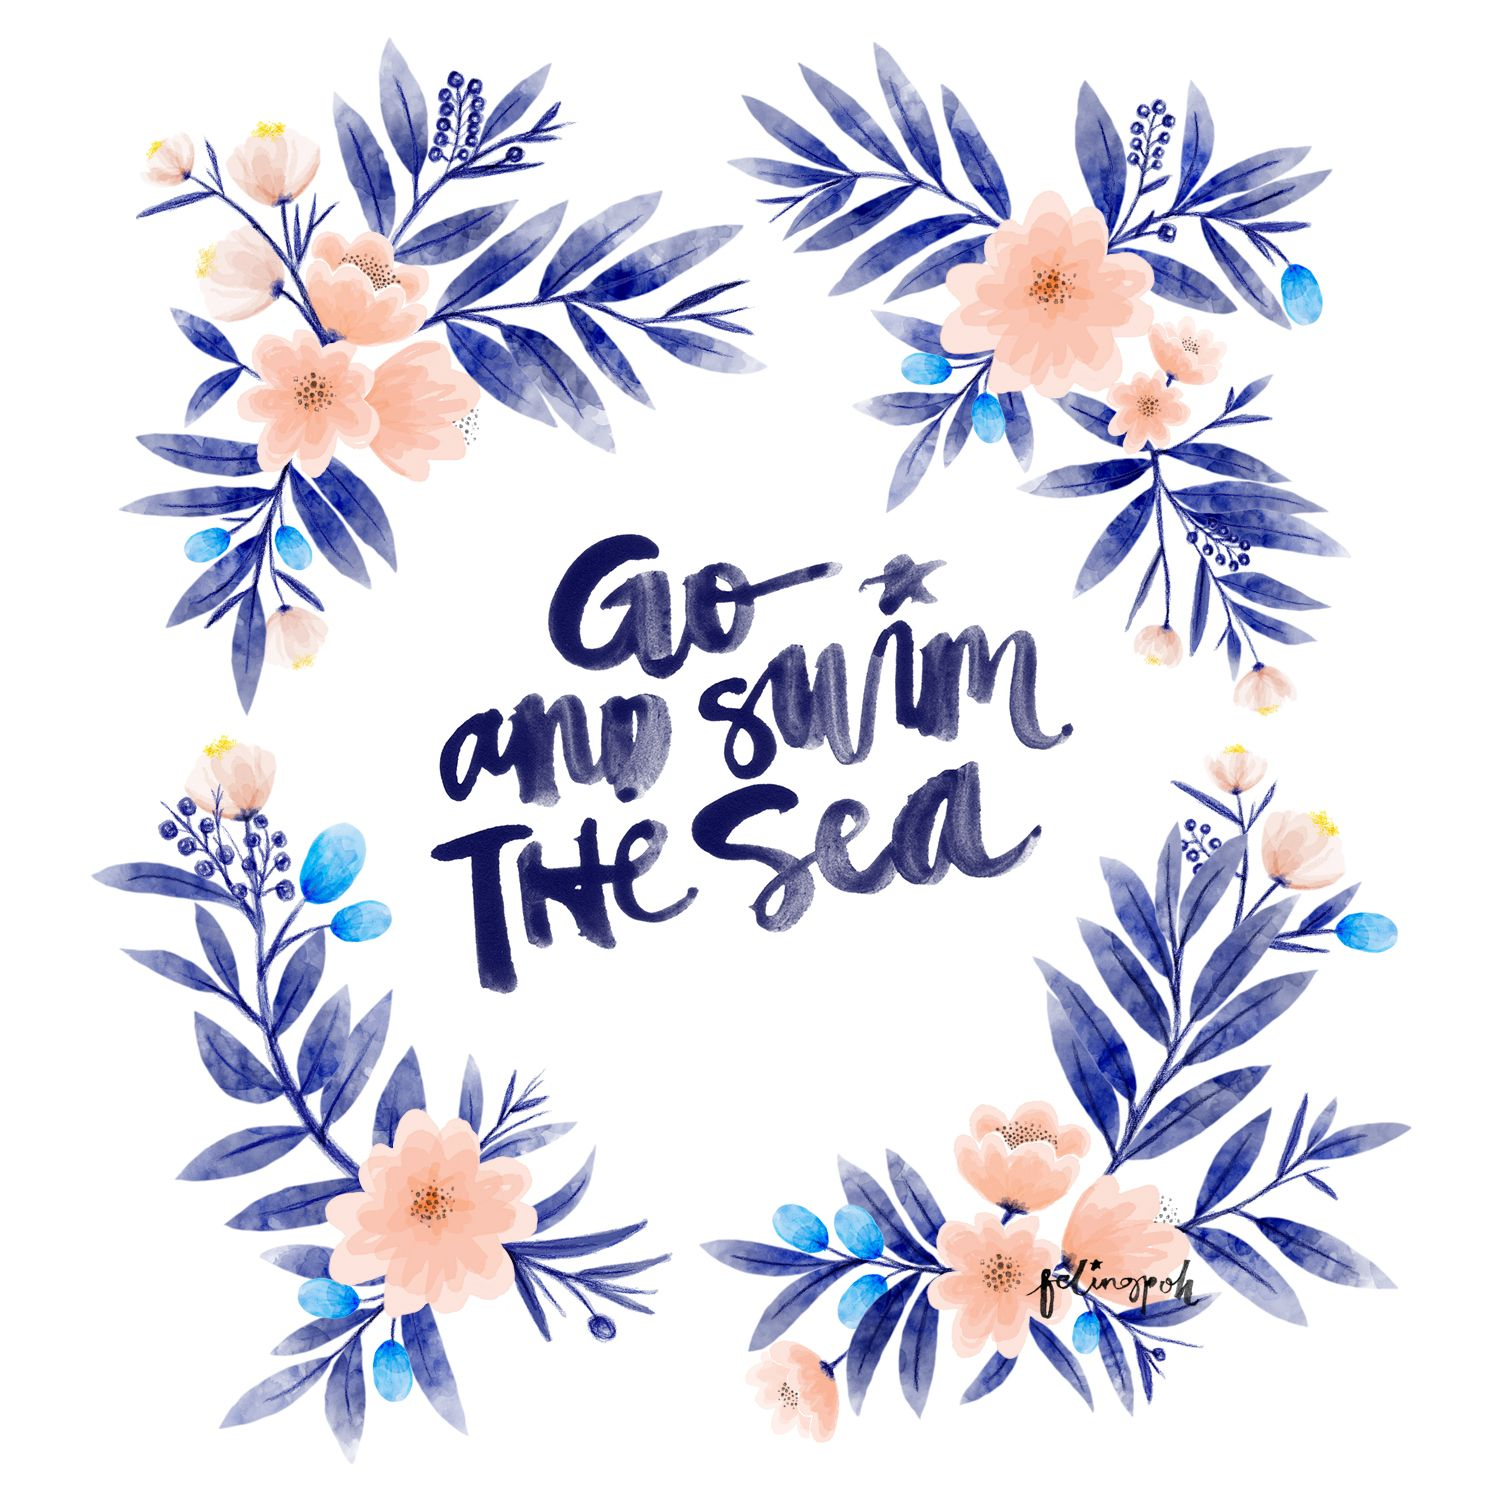 Go and swim the sea Calligraphy & Flowers Wreath quotes